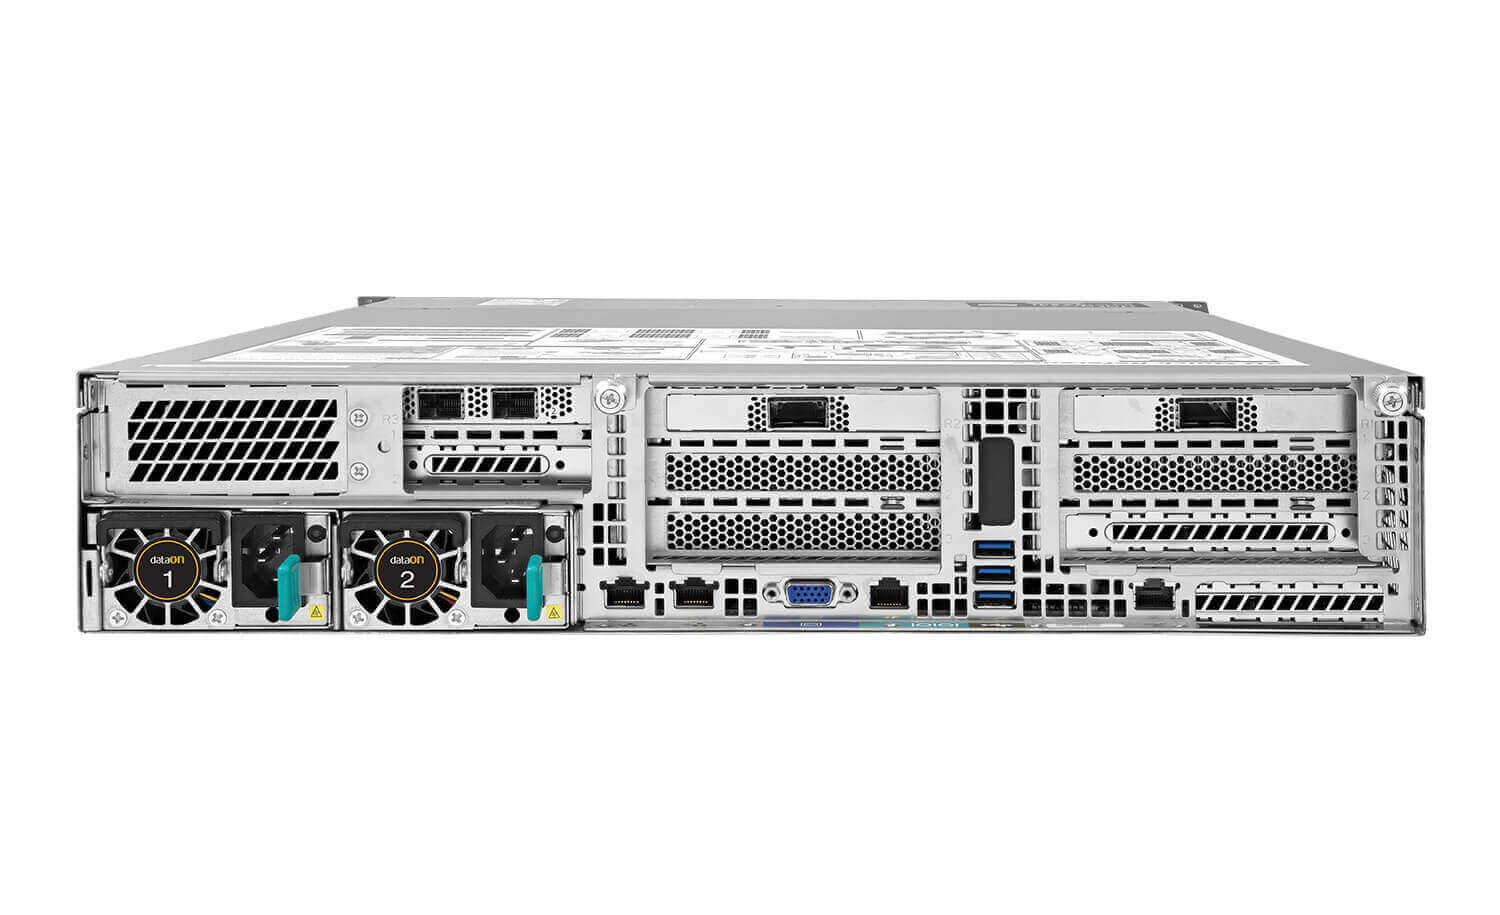 allsystems-producten-hyperconverged-systems-DataON_S2D-5224i_RearView